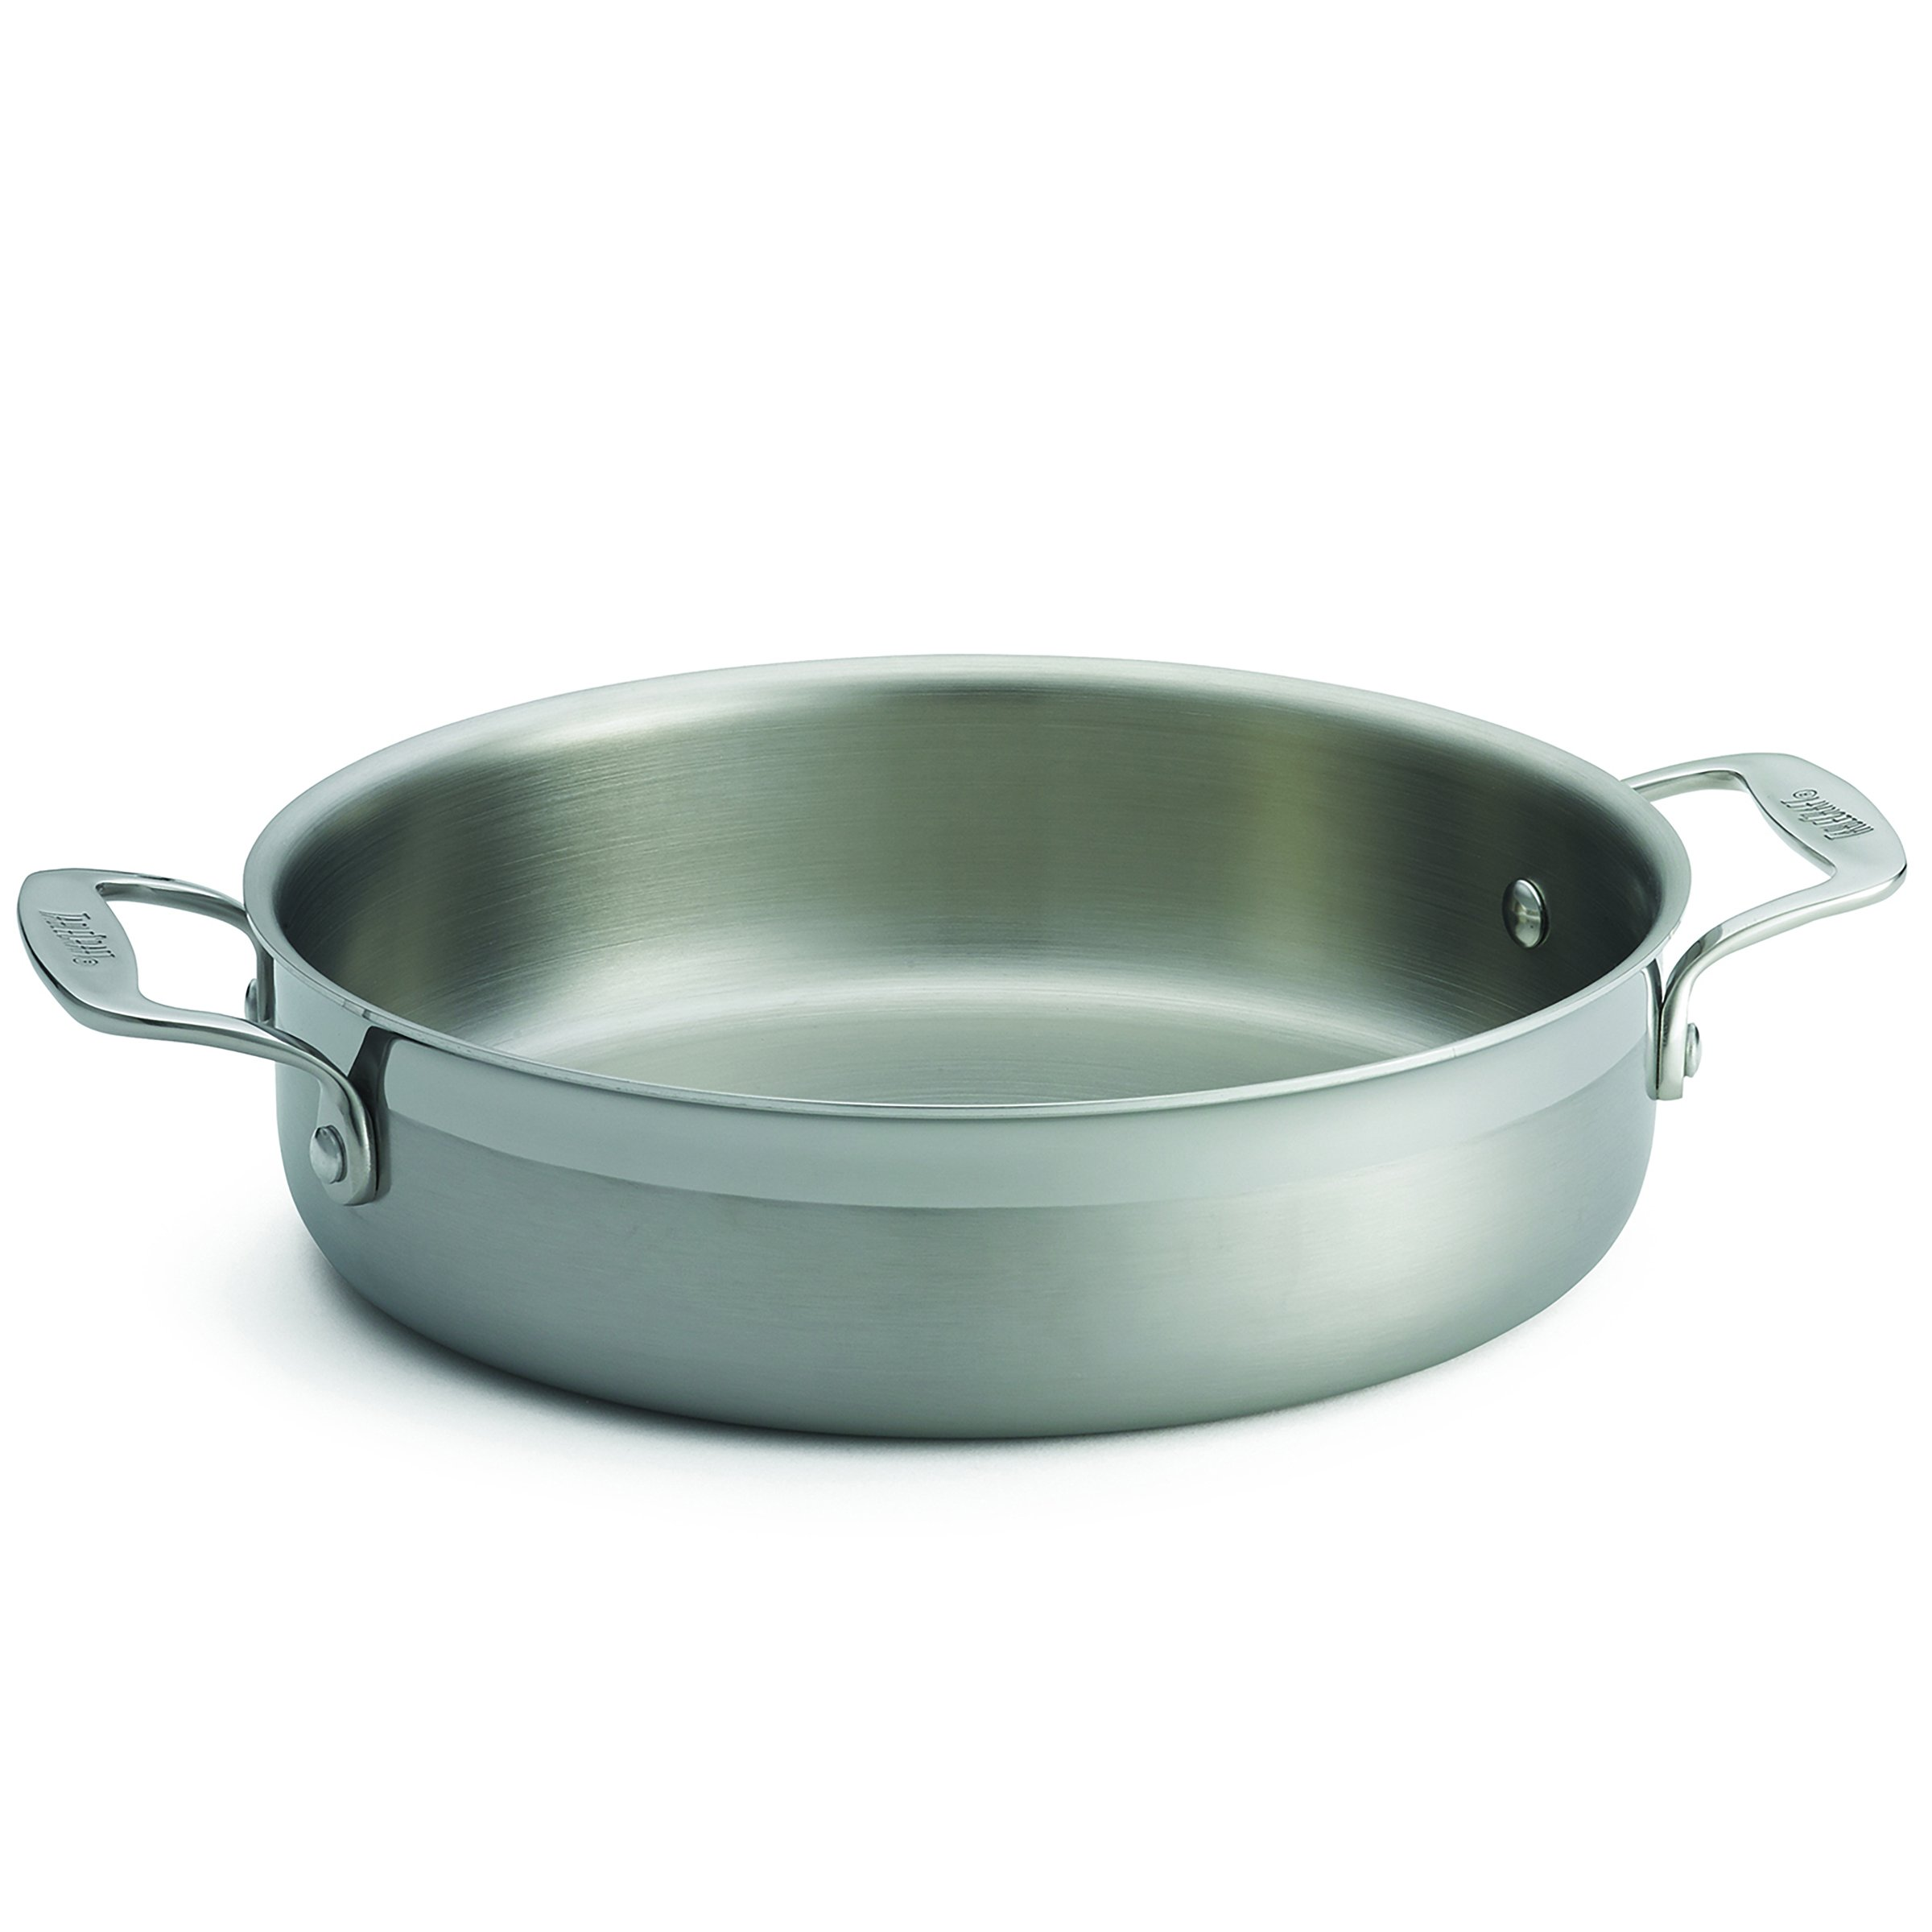 TableCraft Products CW7010 Tri-Ply Brazier with 2 Handles,10'' Diameter x 2½'', 5'' Height, 10'' Width, 13.125'' Length